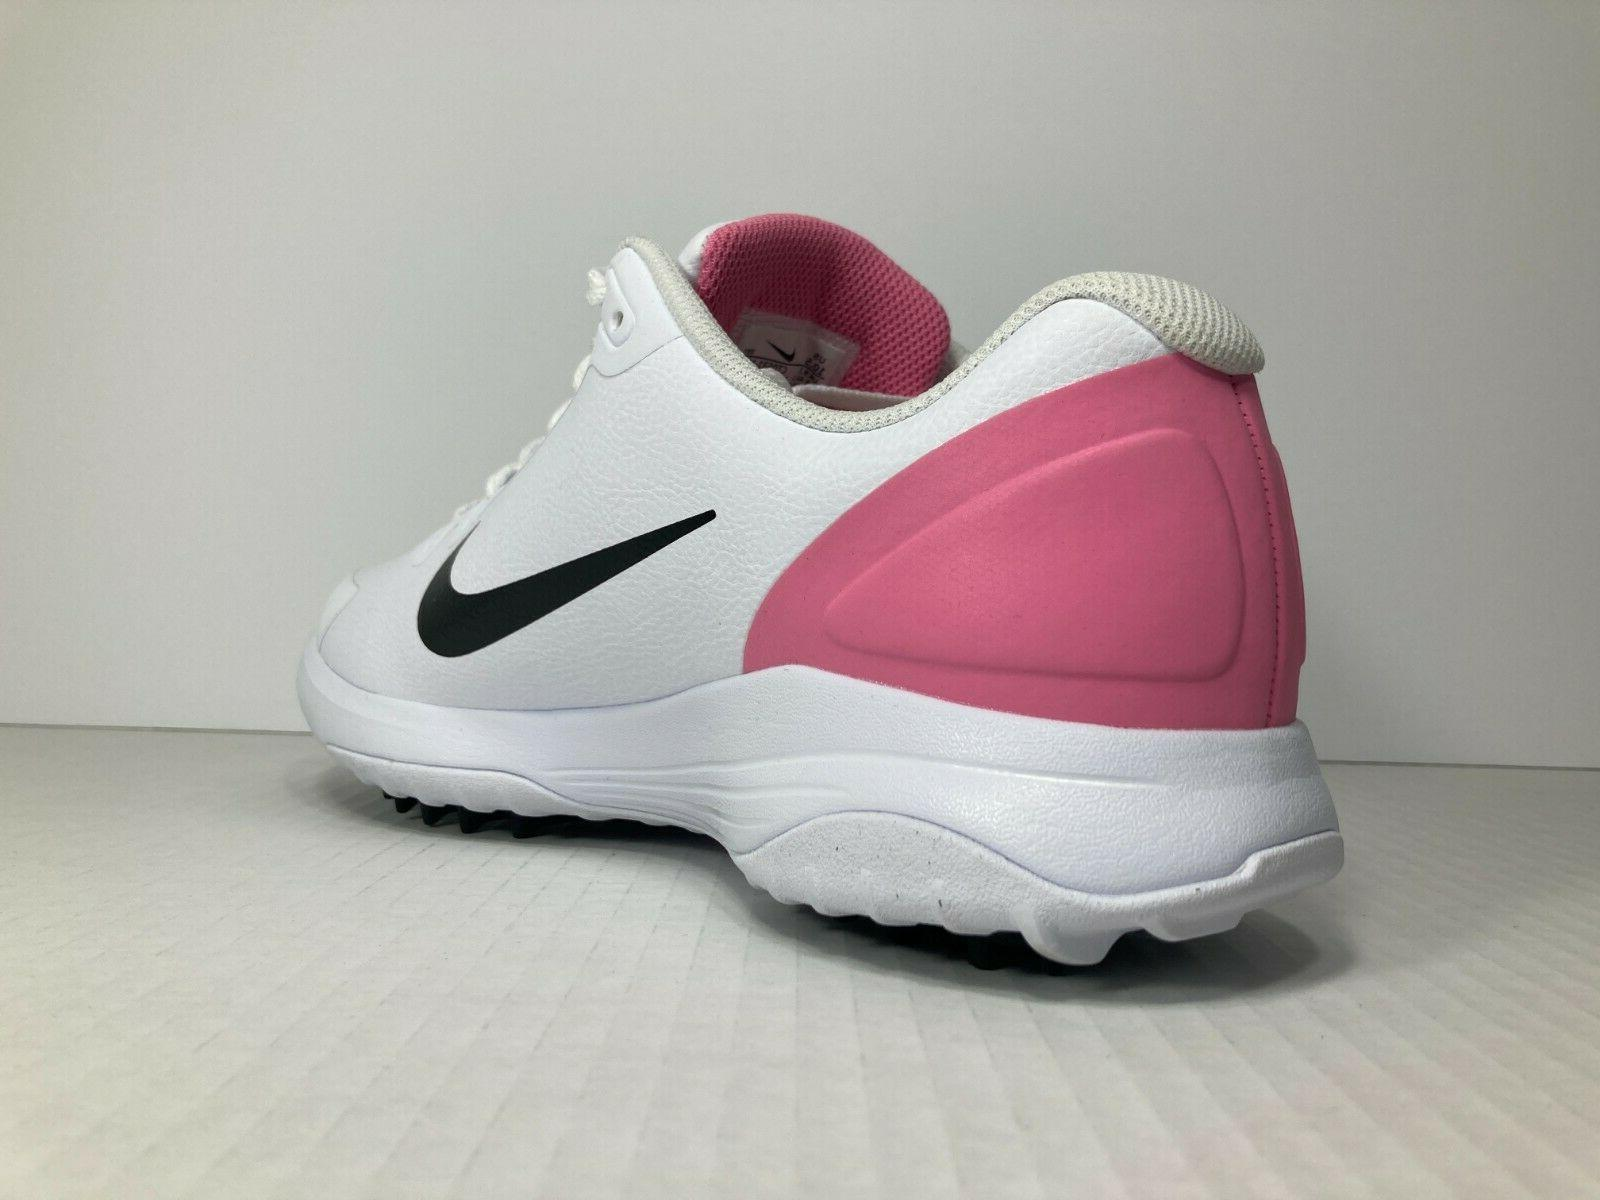 NIKE Mens Golfing Shoes Spikes - Pink -